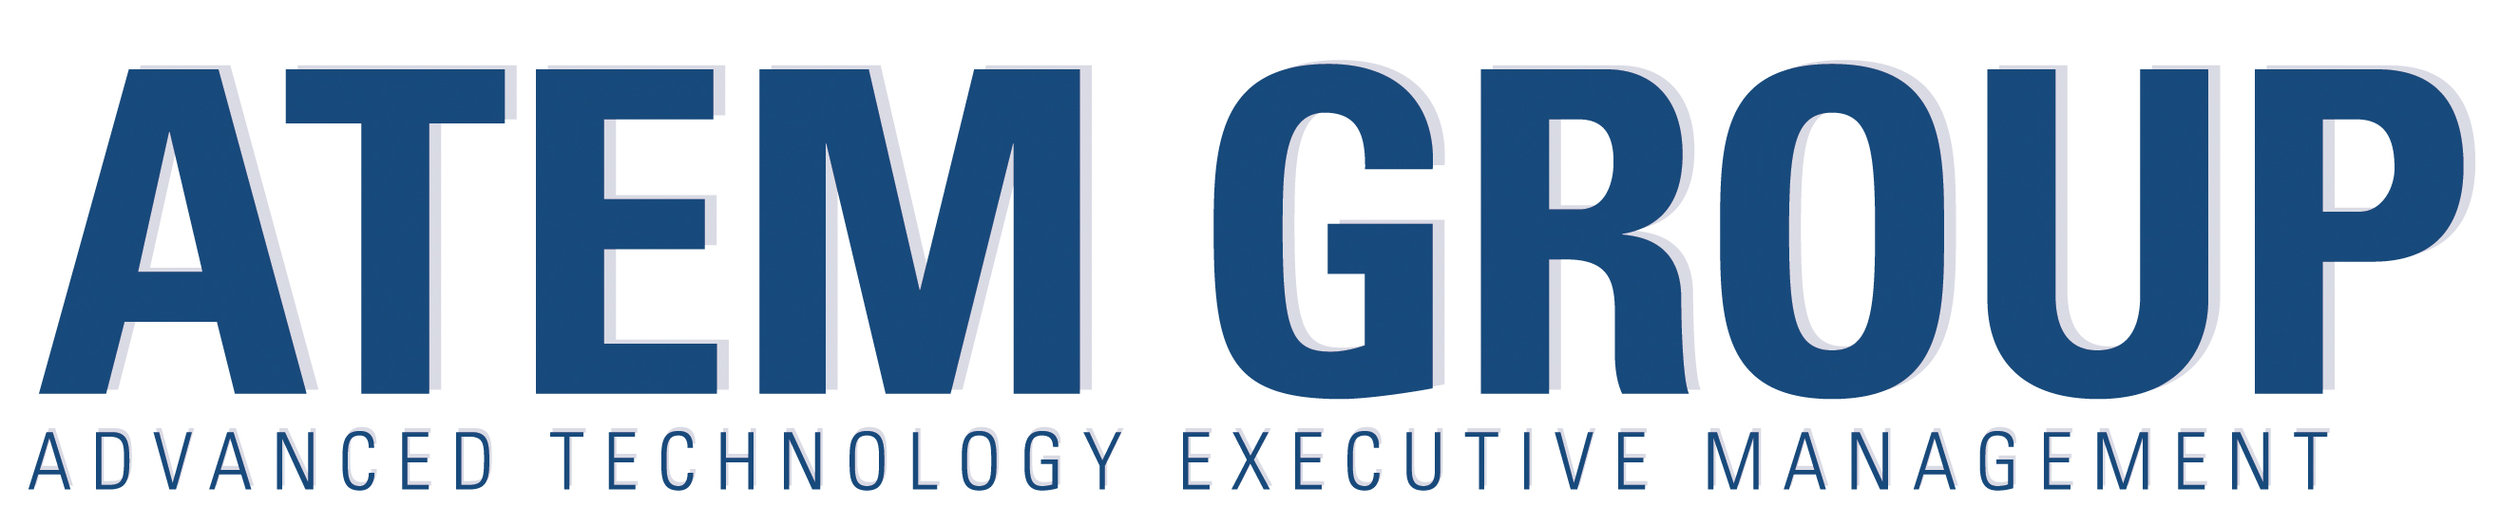 ATEM GROUP-logo.jpg